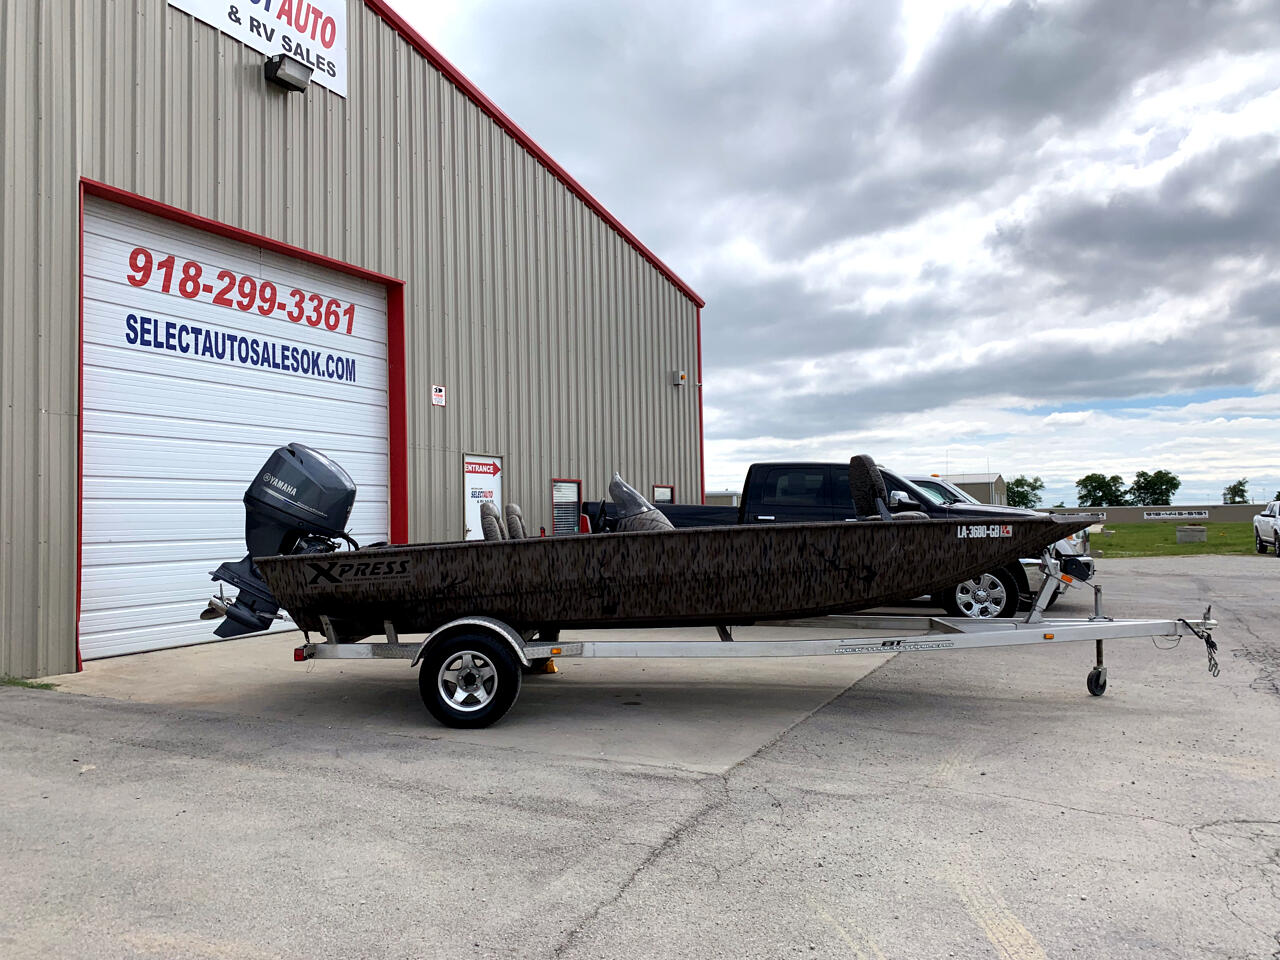 2014 Xpress Bass boat XP200